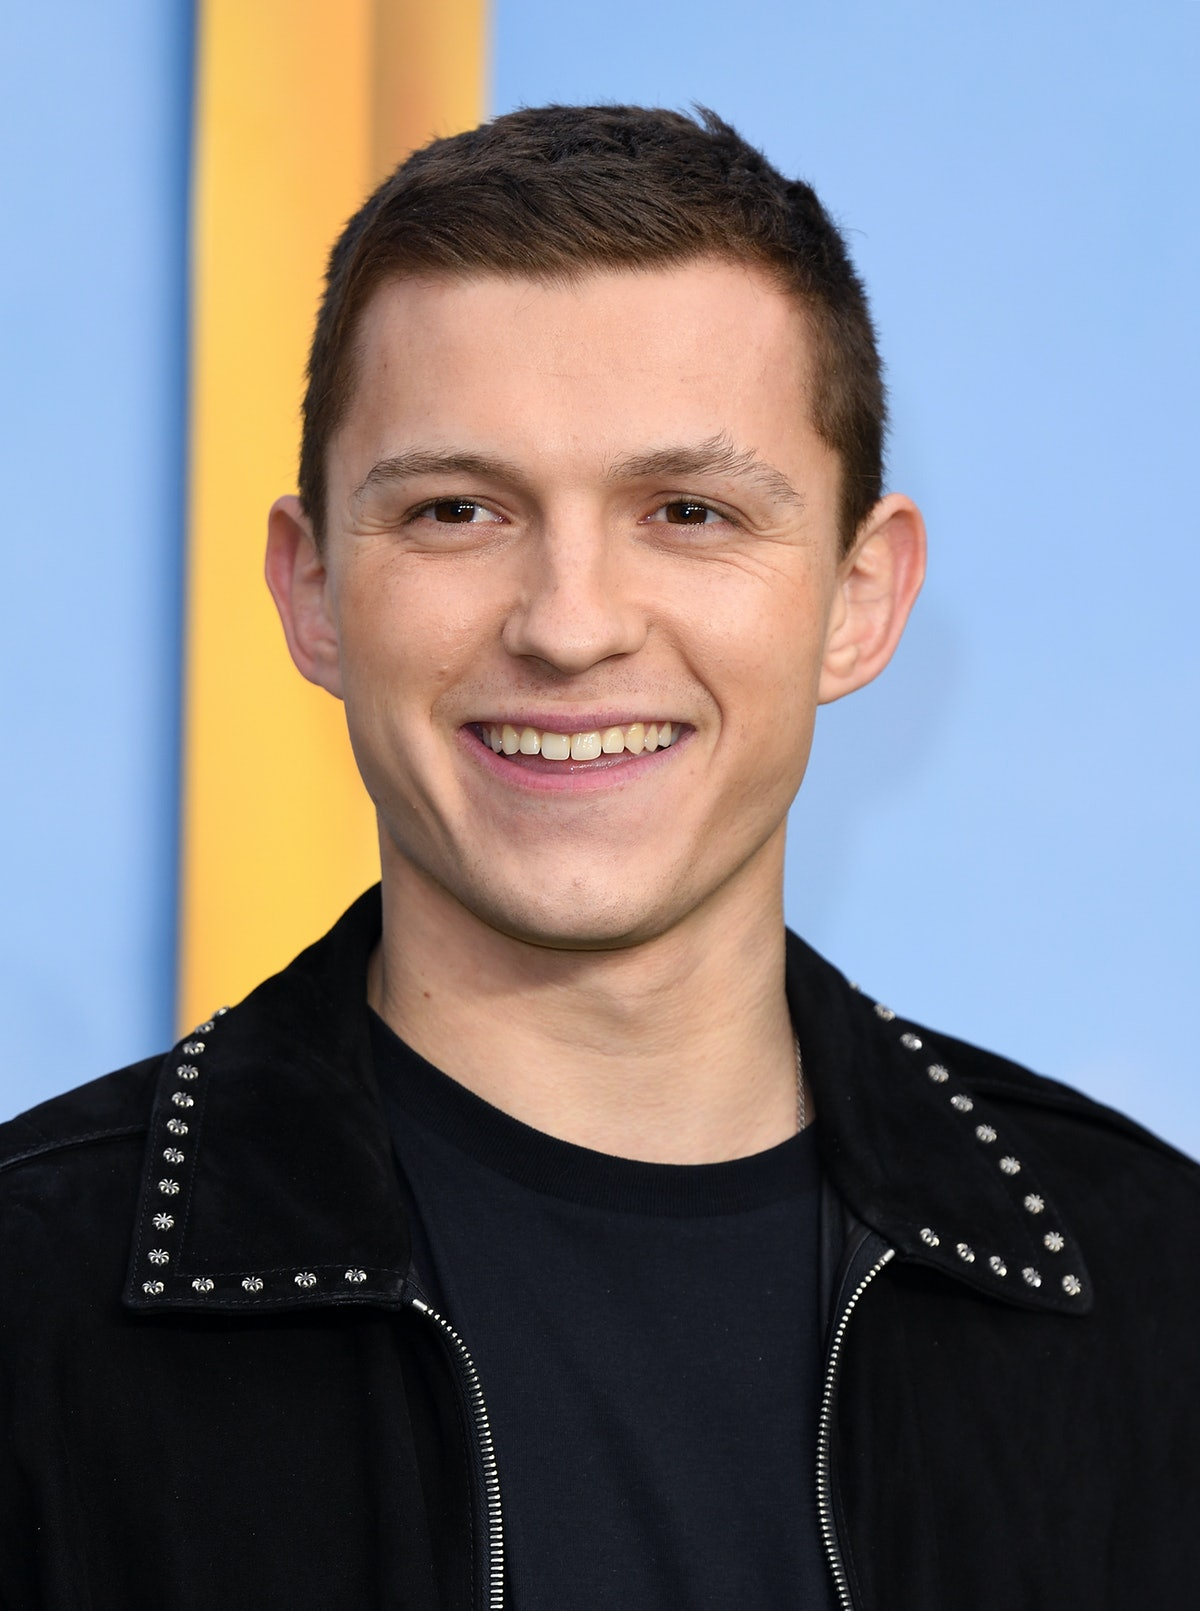 Tom Holland's quotes about deleting Instagram are pretty relatable.